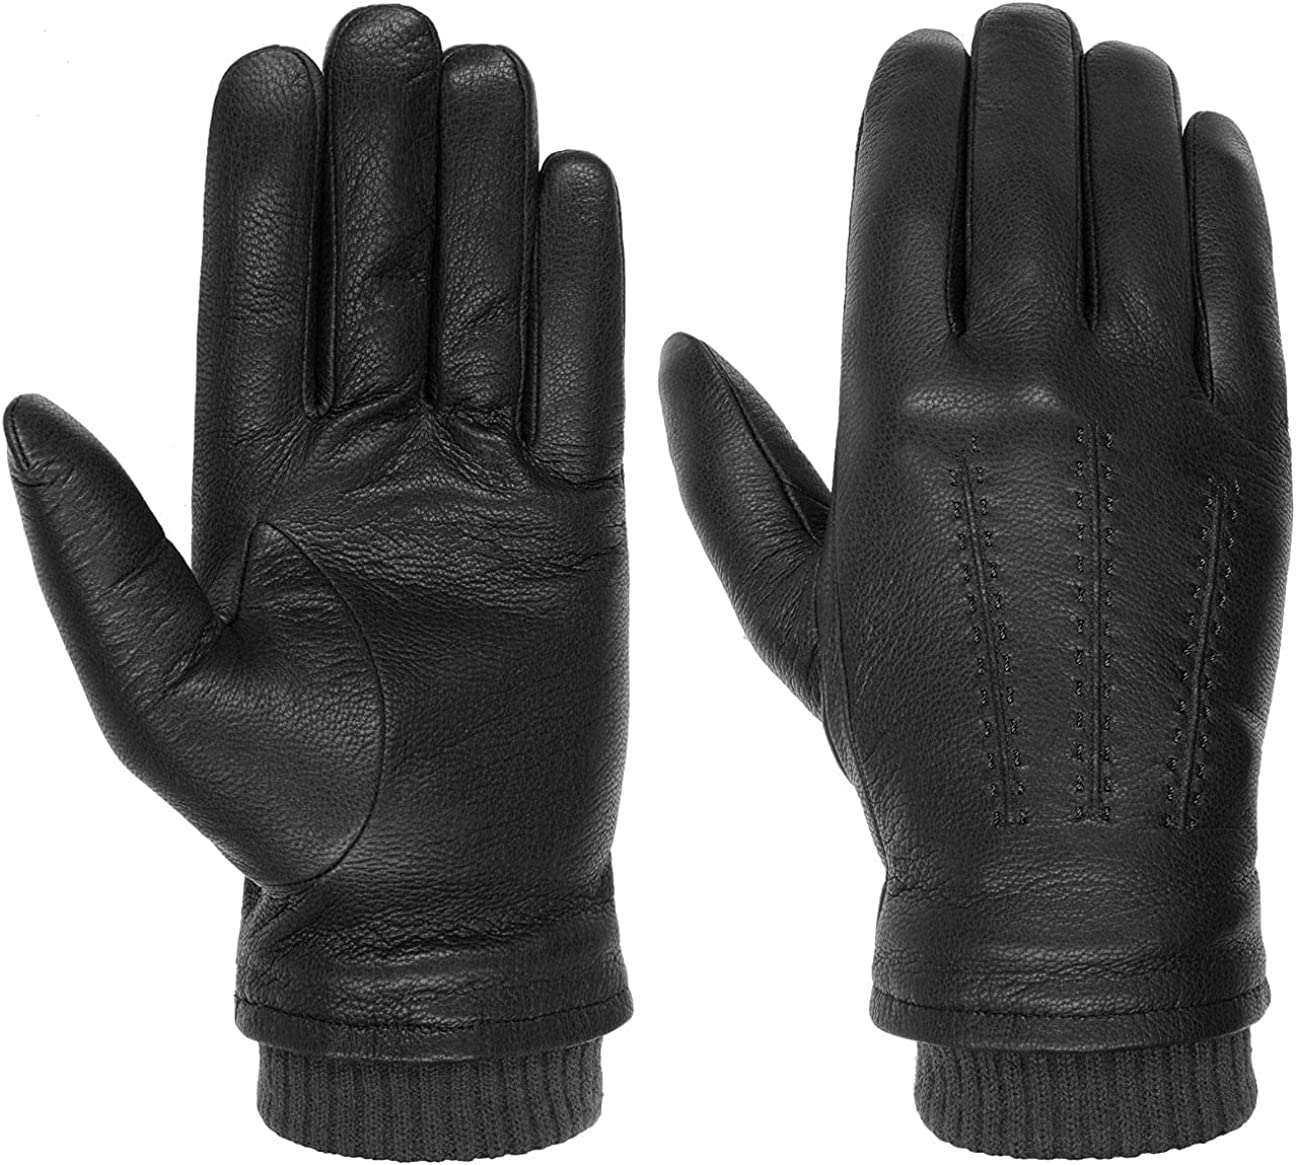 Max 43% OFF Stetson Classic Goat Nappa - Max 78% OFF Leather Men Gloves